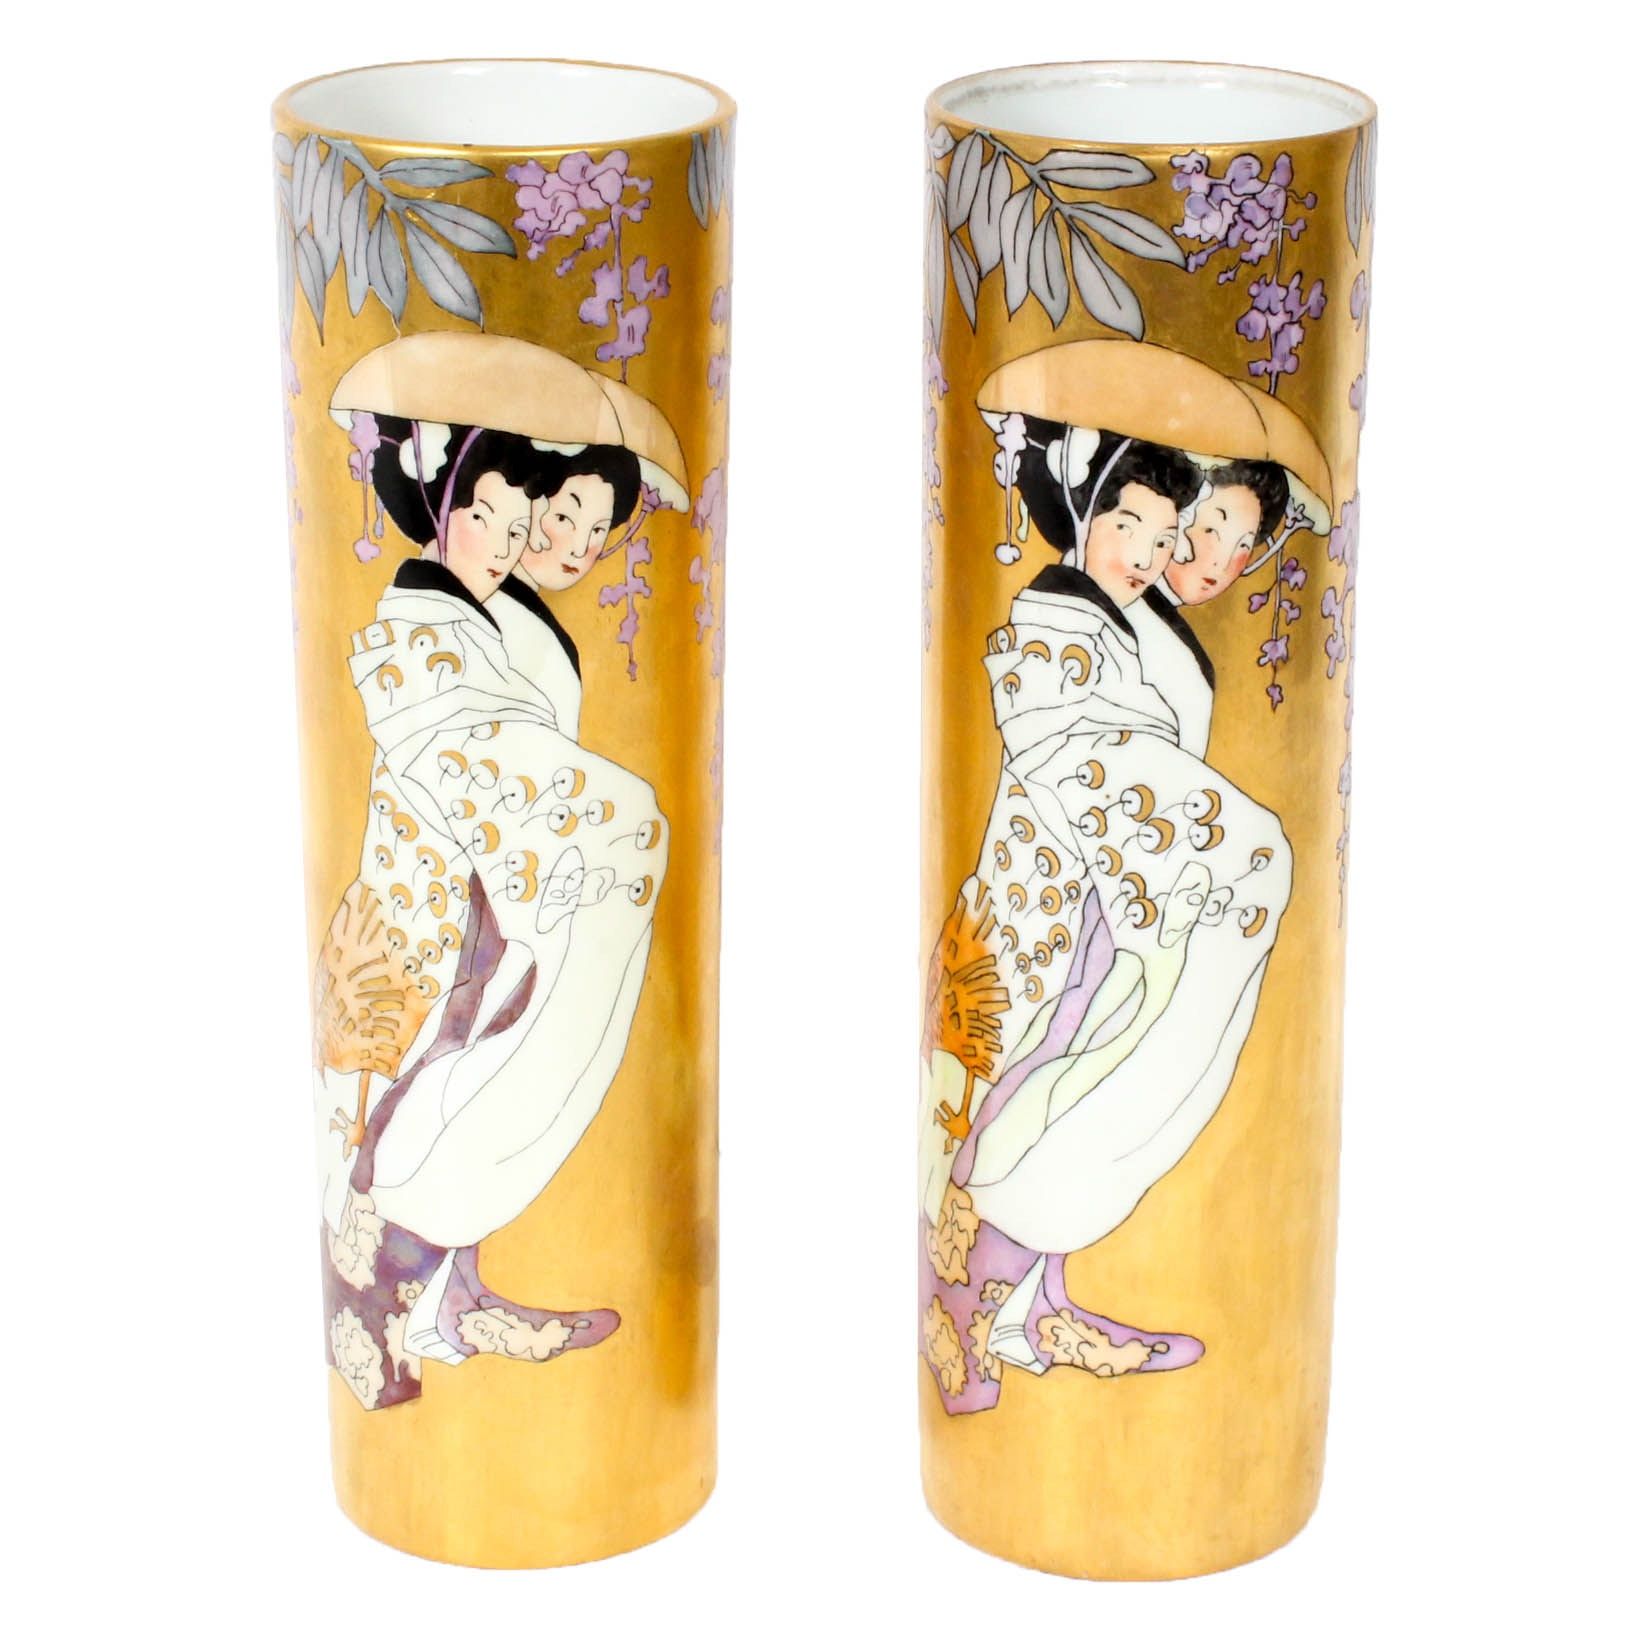 1921 MZ Austria Hand Painted Vases Signed by Edith Macbride